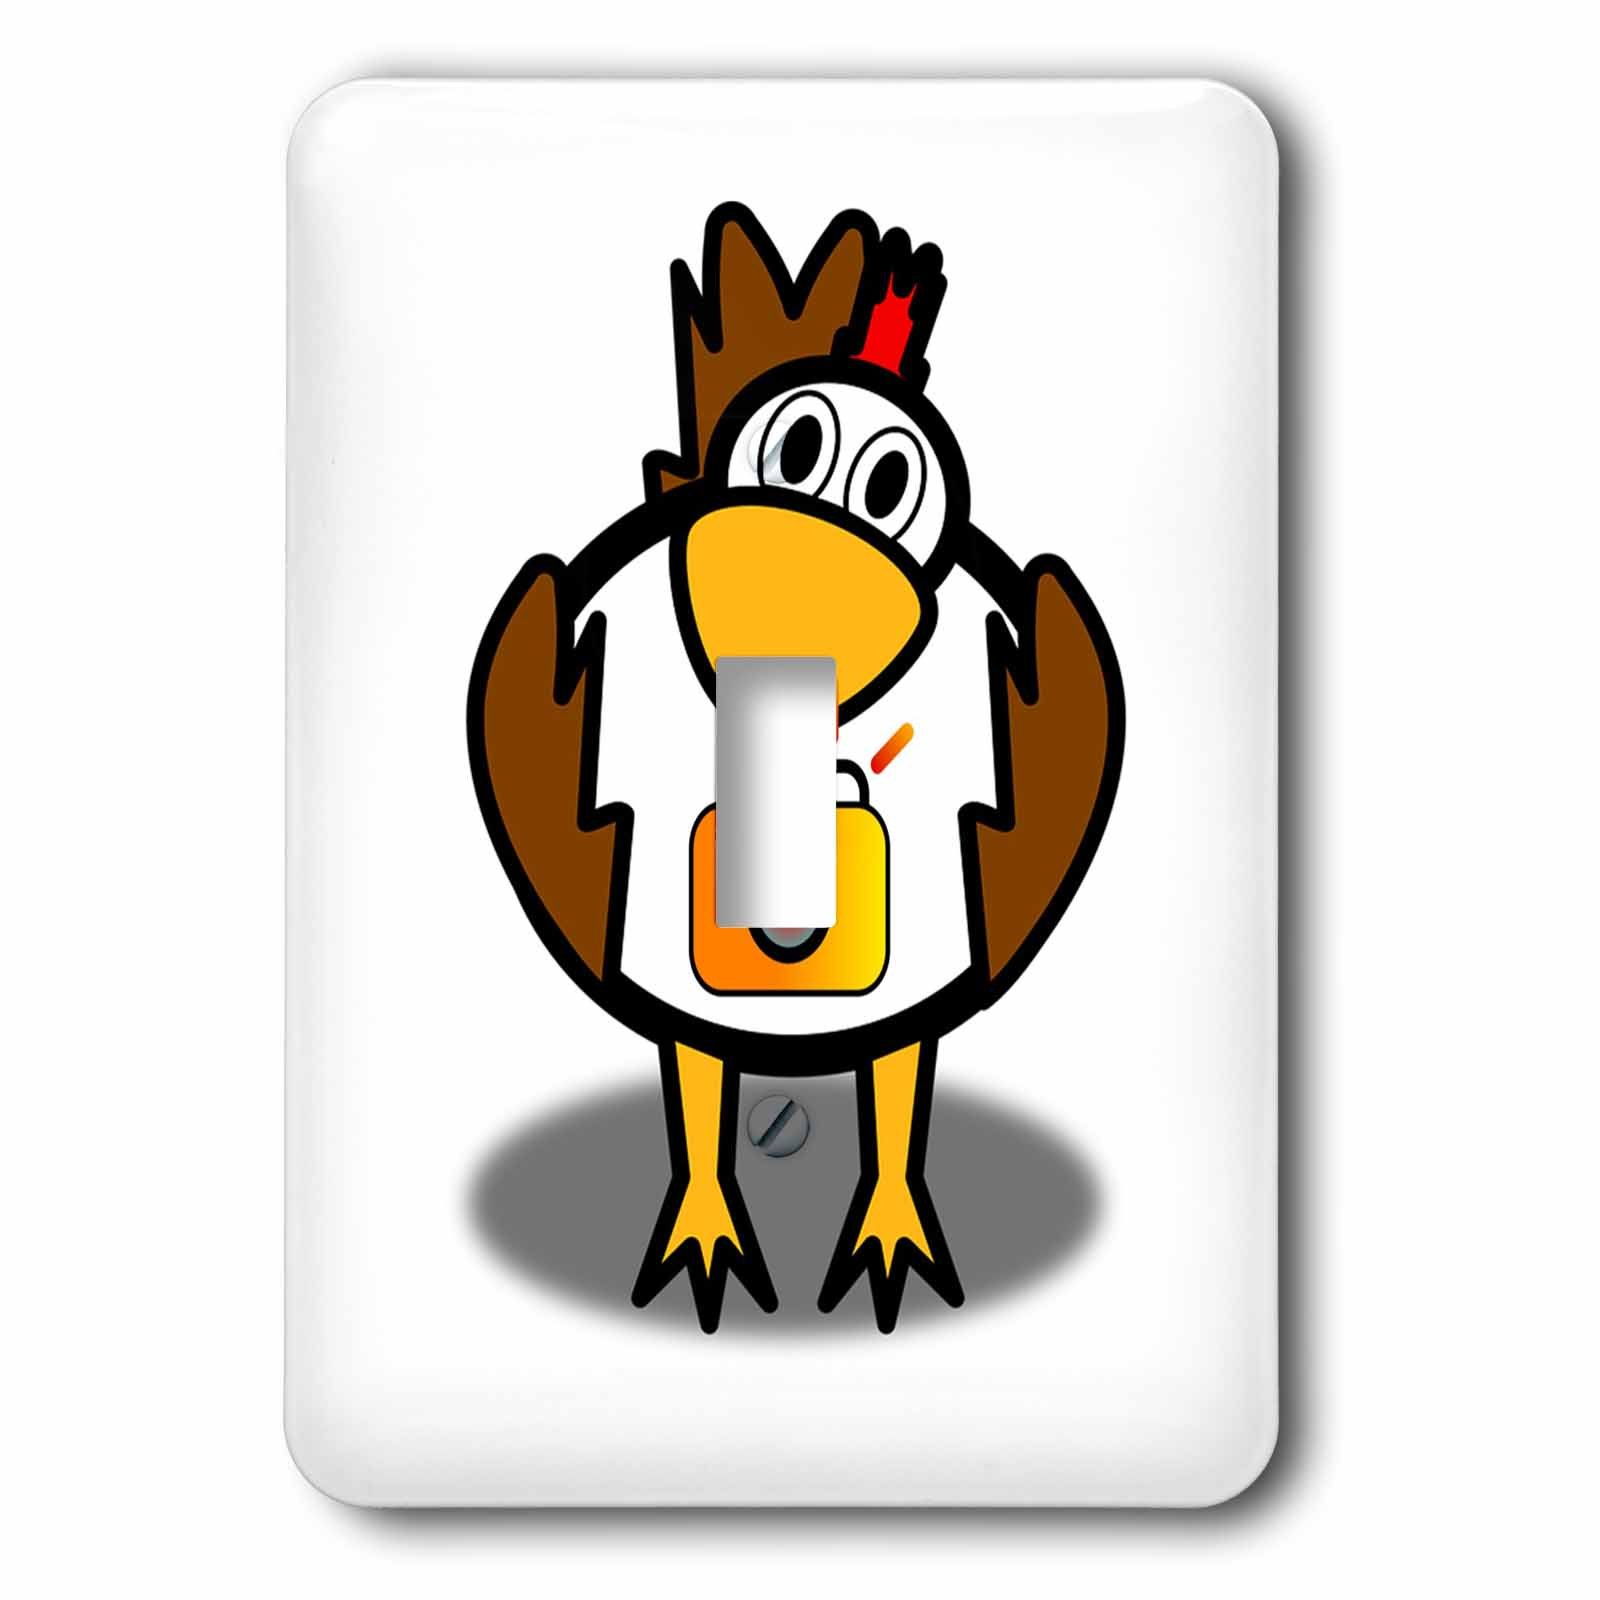 3dRose Cartoon Animal Humor - Image of Cartoon Chicken Holding A Camera - Light Switch Covers - single toggle switch (lsp_273371_1)